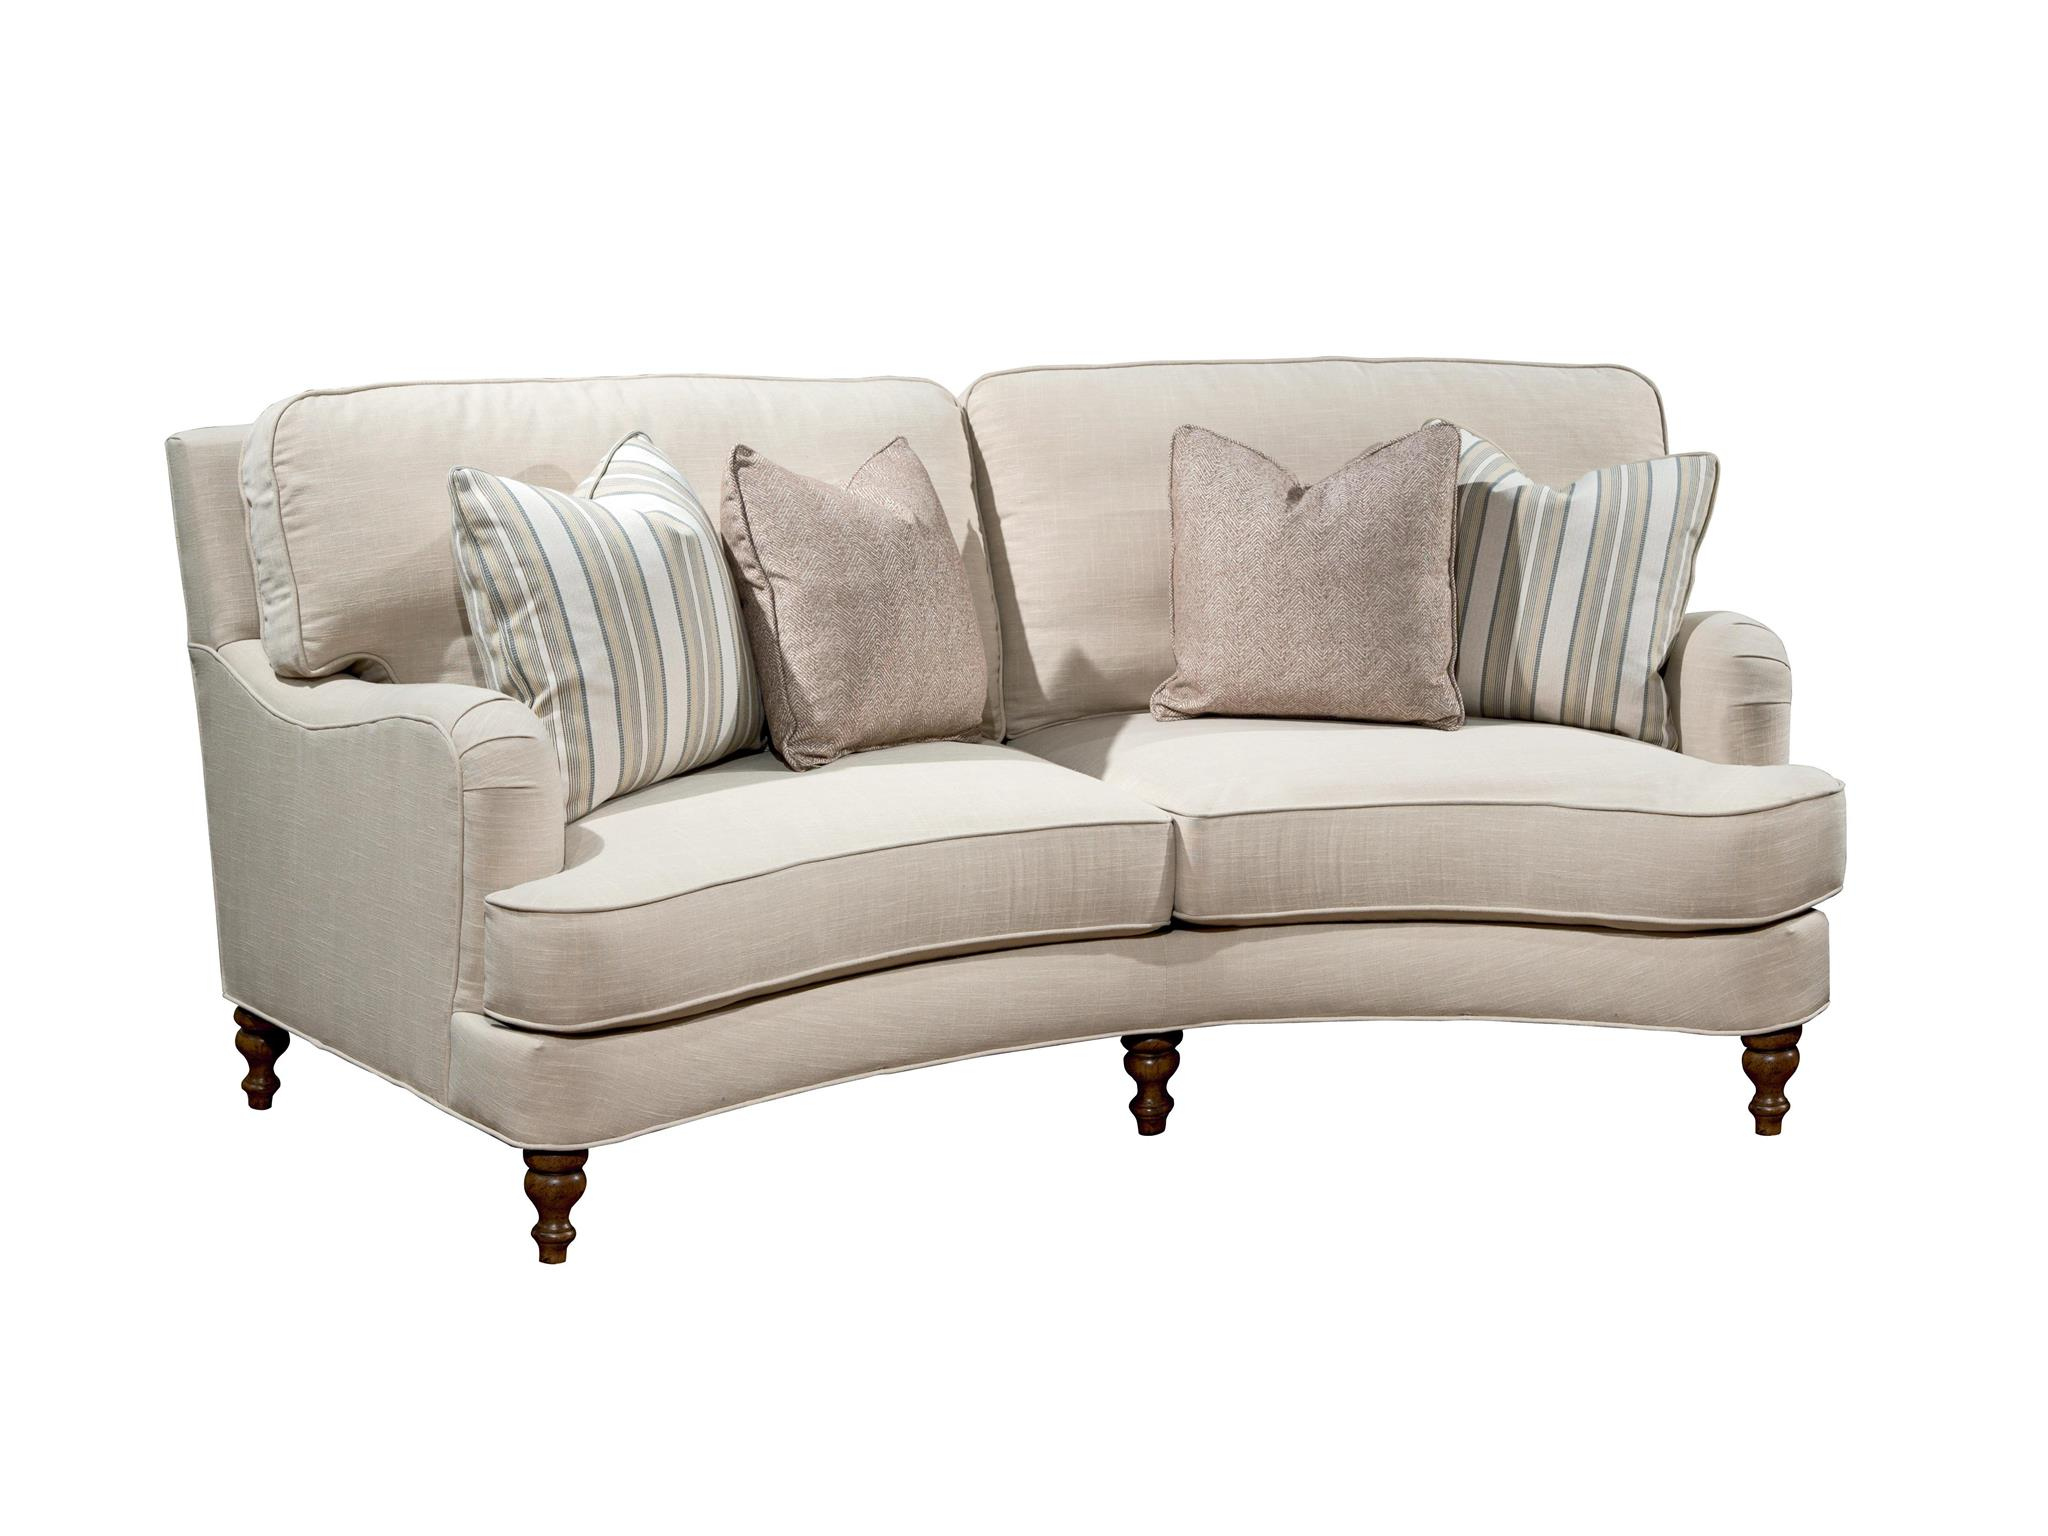 Fine Furniture Design | Grace Sofa Within Grace Sofa Chairs (View 3 of 25)